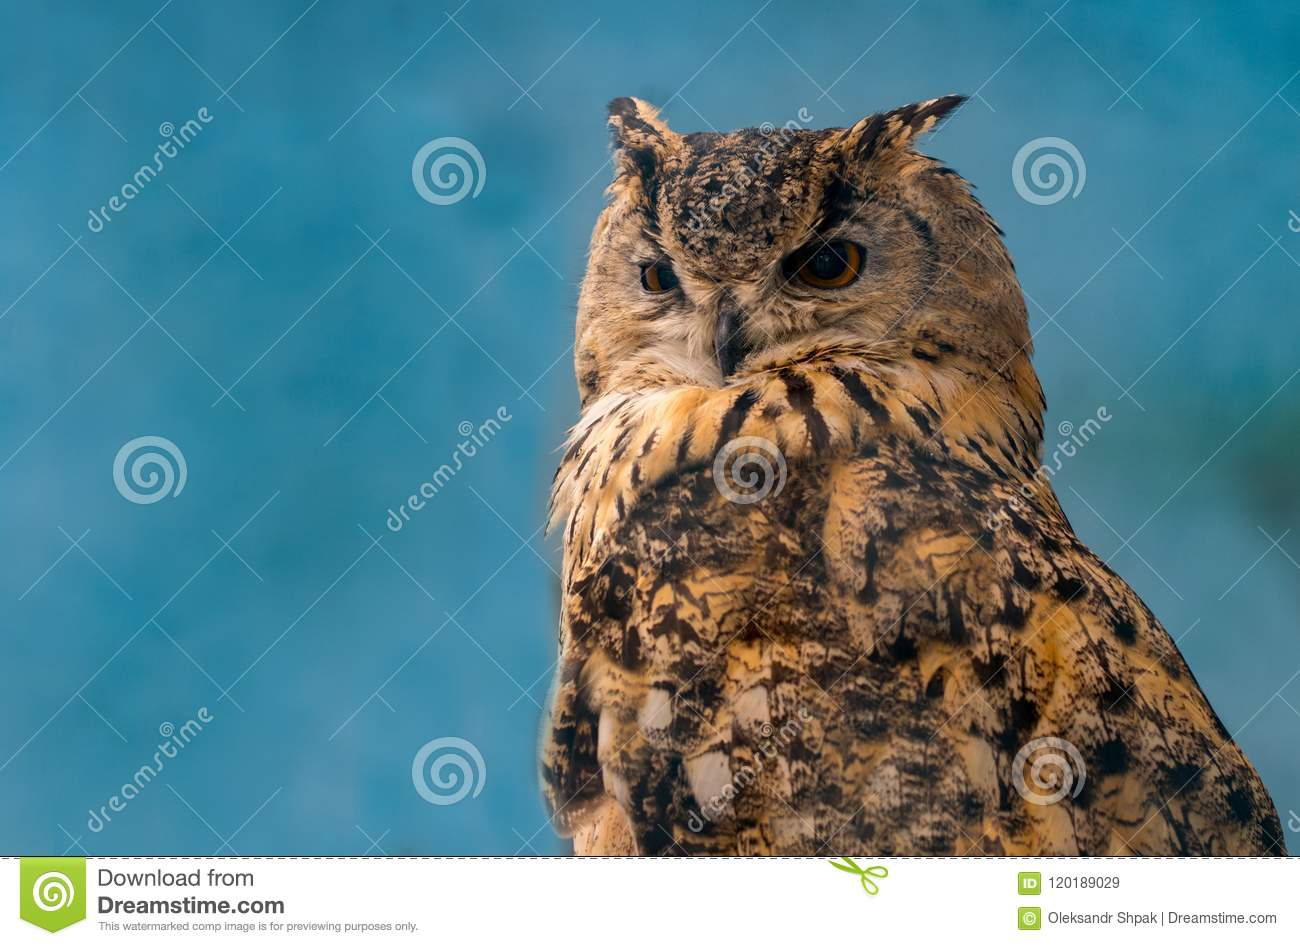 beautiful eagle owl on blue background with copy space